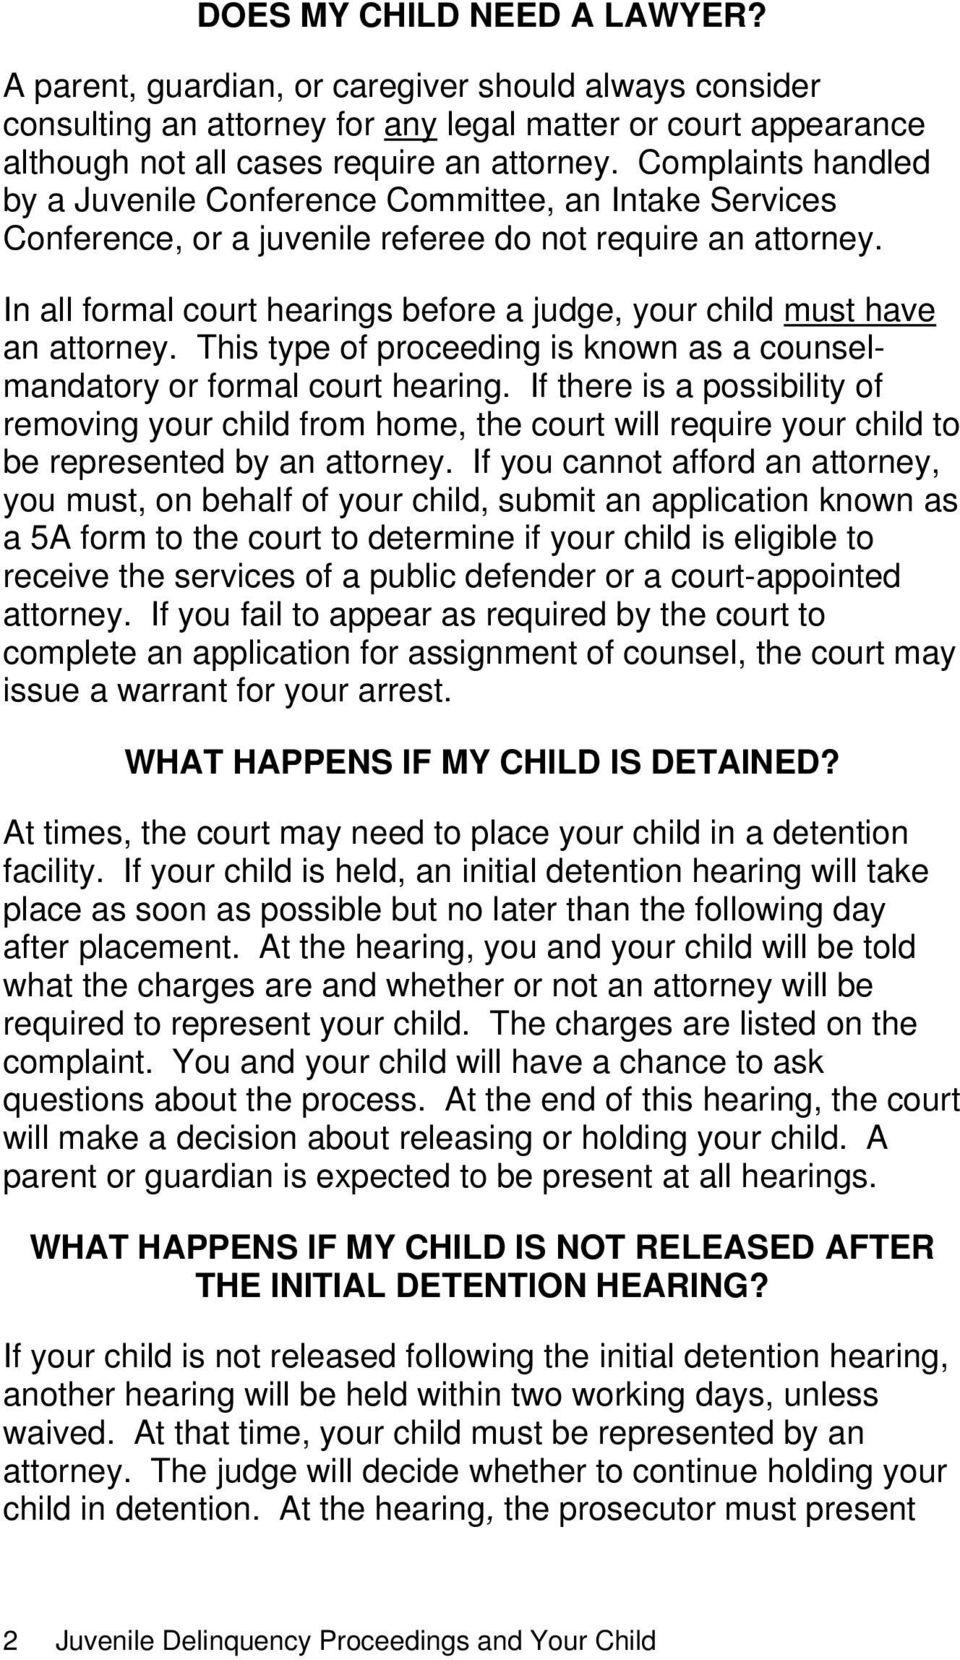 In all formal court hearings before a judge, your child must have an attorney. This type of proceeding is known as a counselmandatory or formal court hearing.